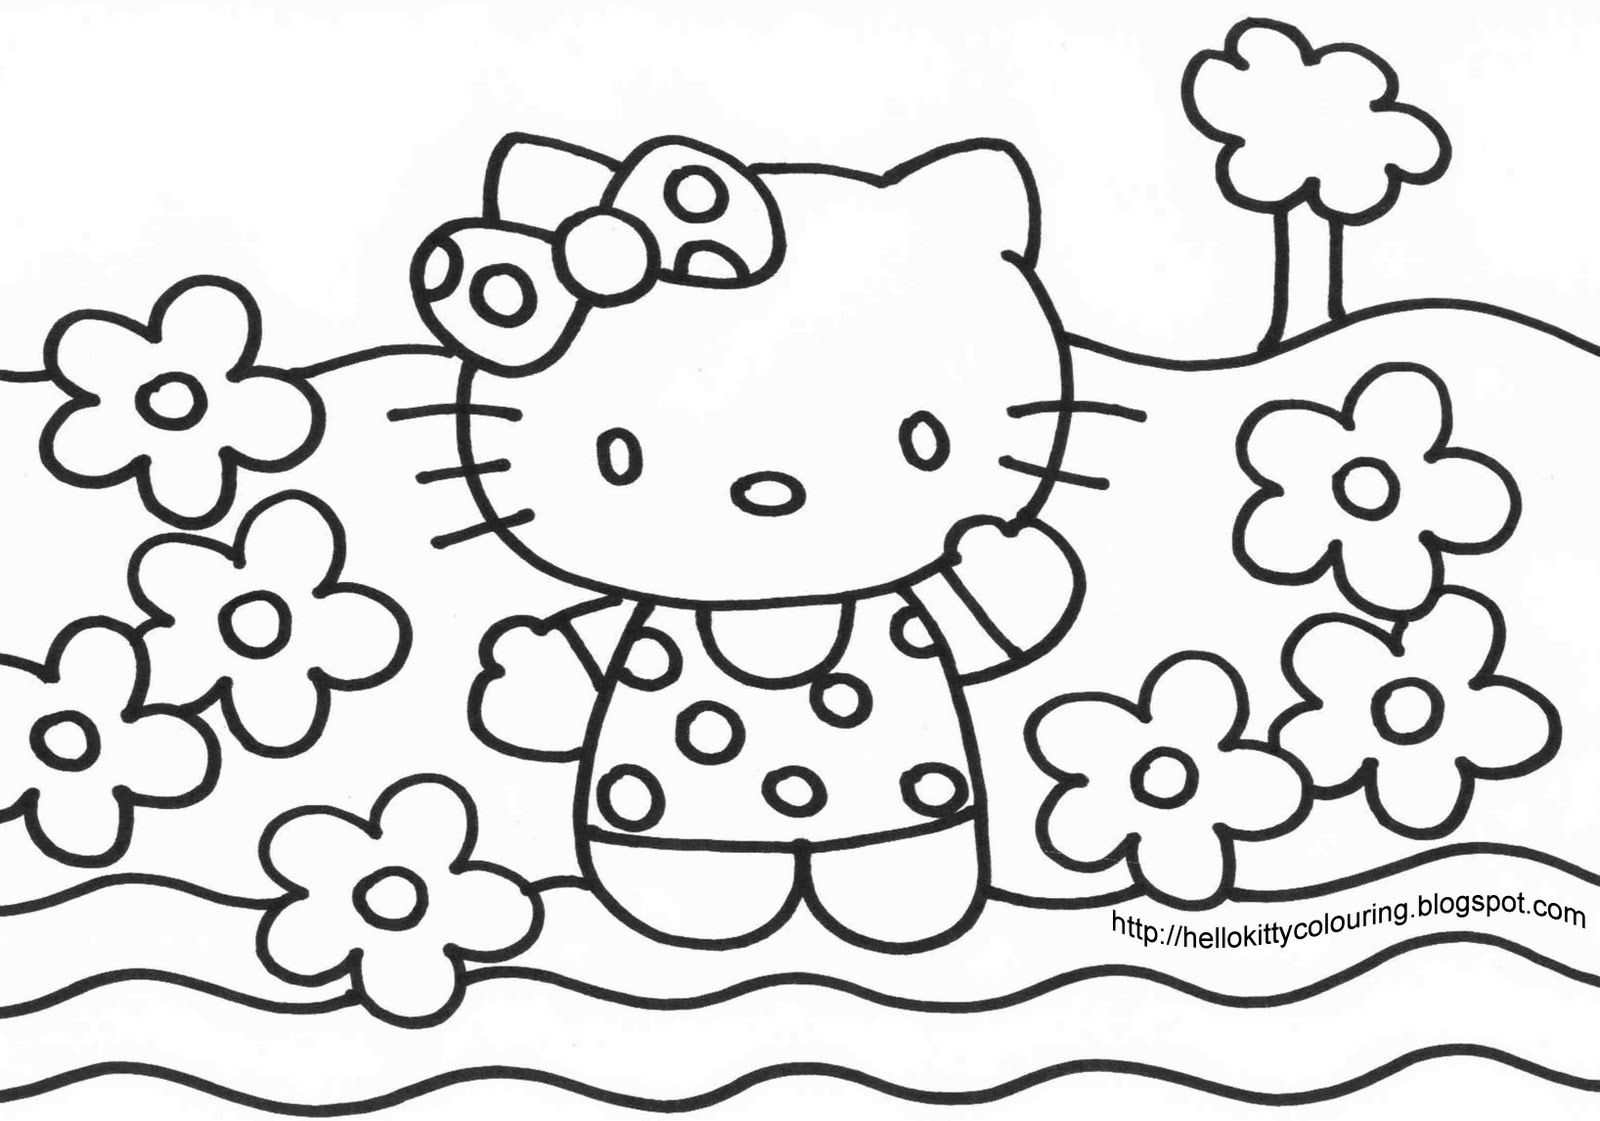 Hello Kitty Coloring Pages Big Coloring Pages Of Hello Kitty With Big Coloring  Pages Of Hello - birijus.com